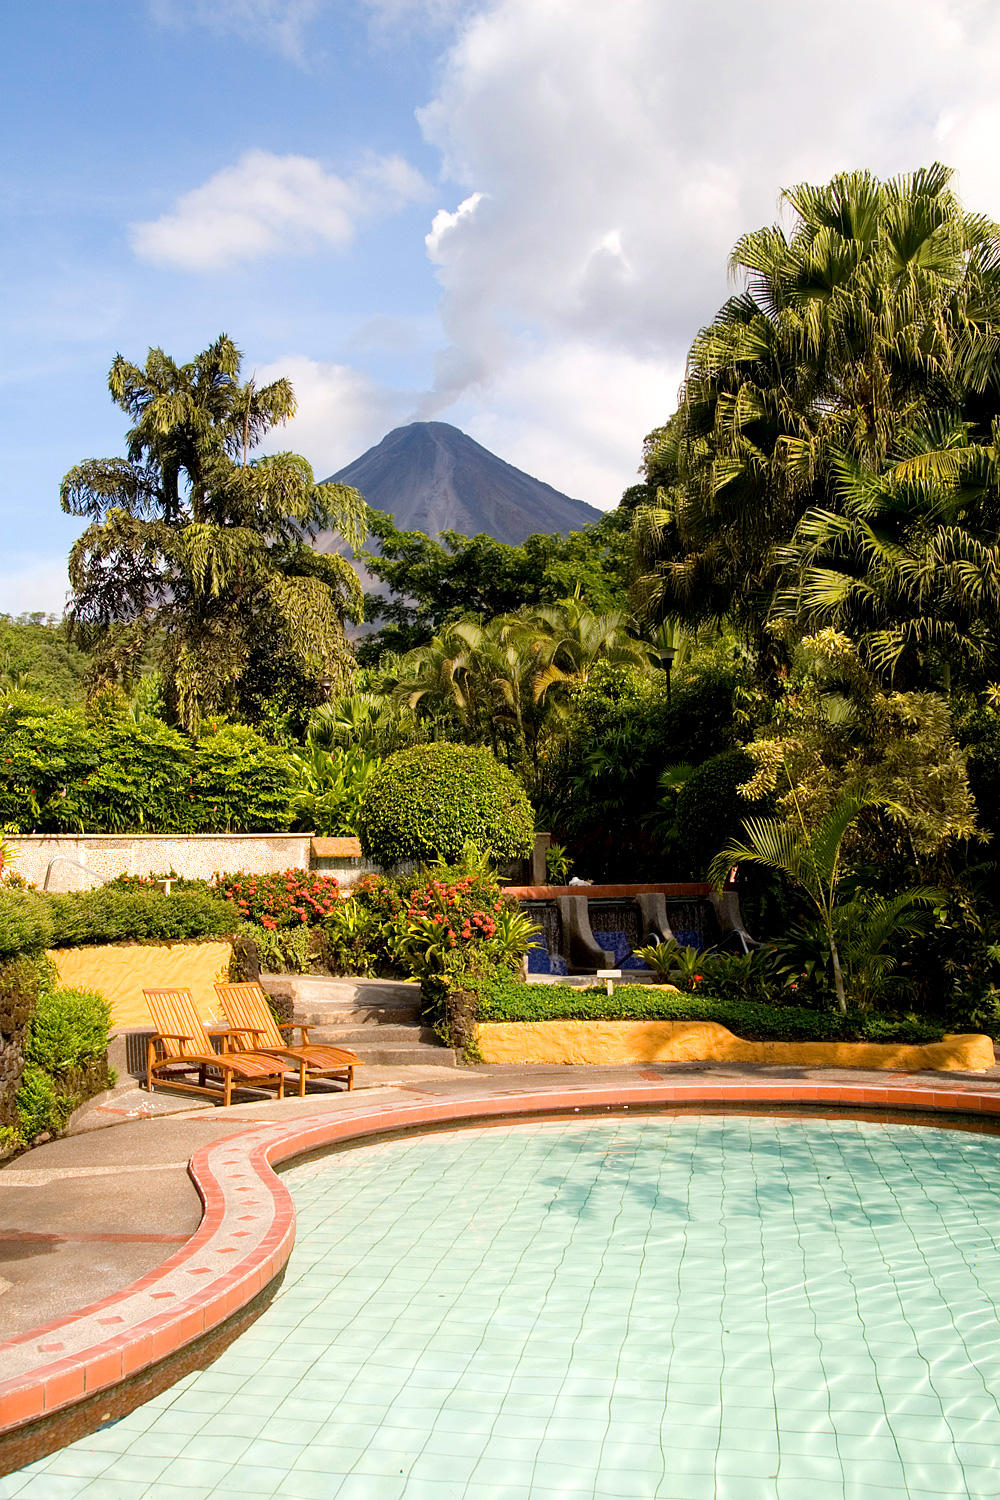 Pool in Tabacon Springs Cost Rica (Foto: Angus Beare | iStockphoto | Thinkstock)